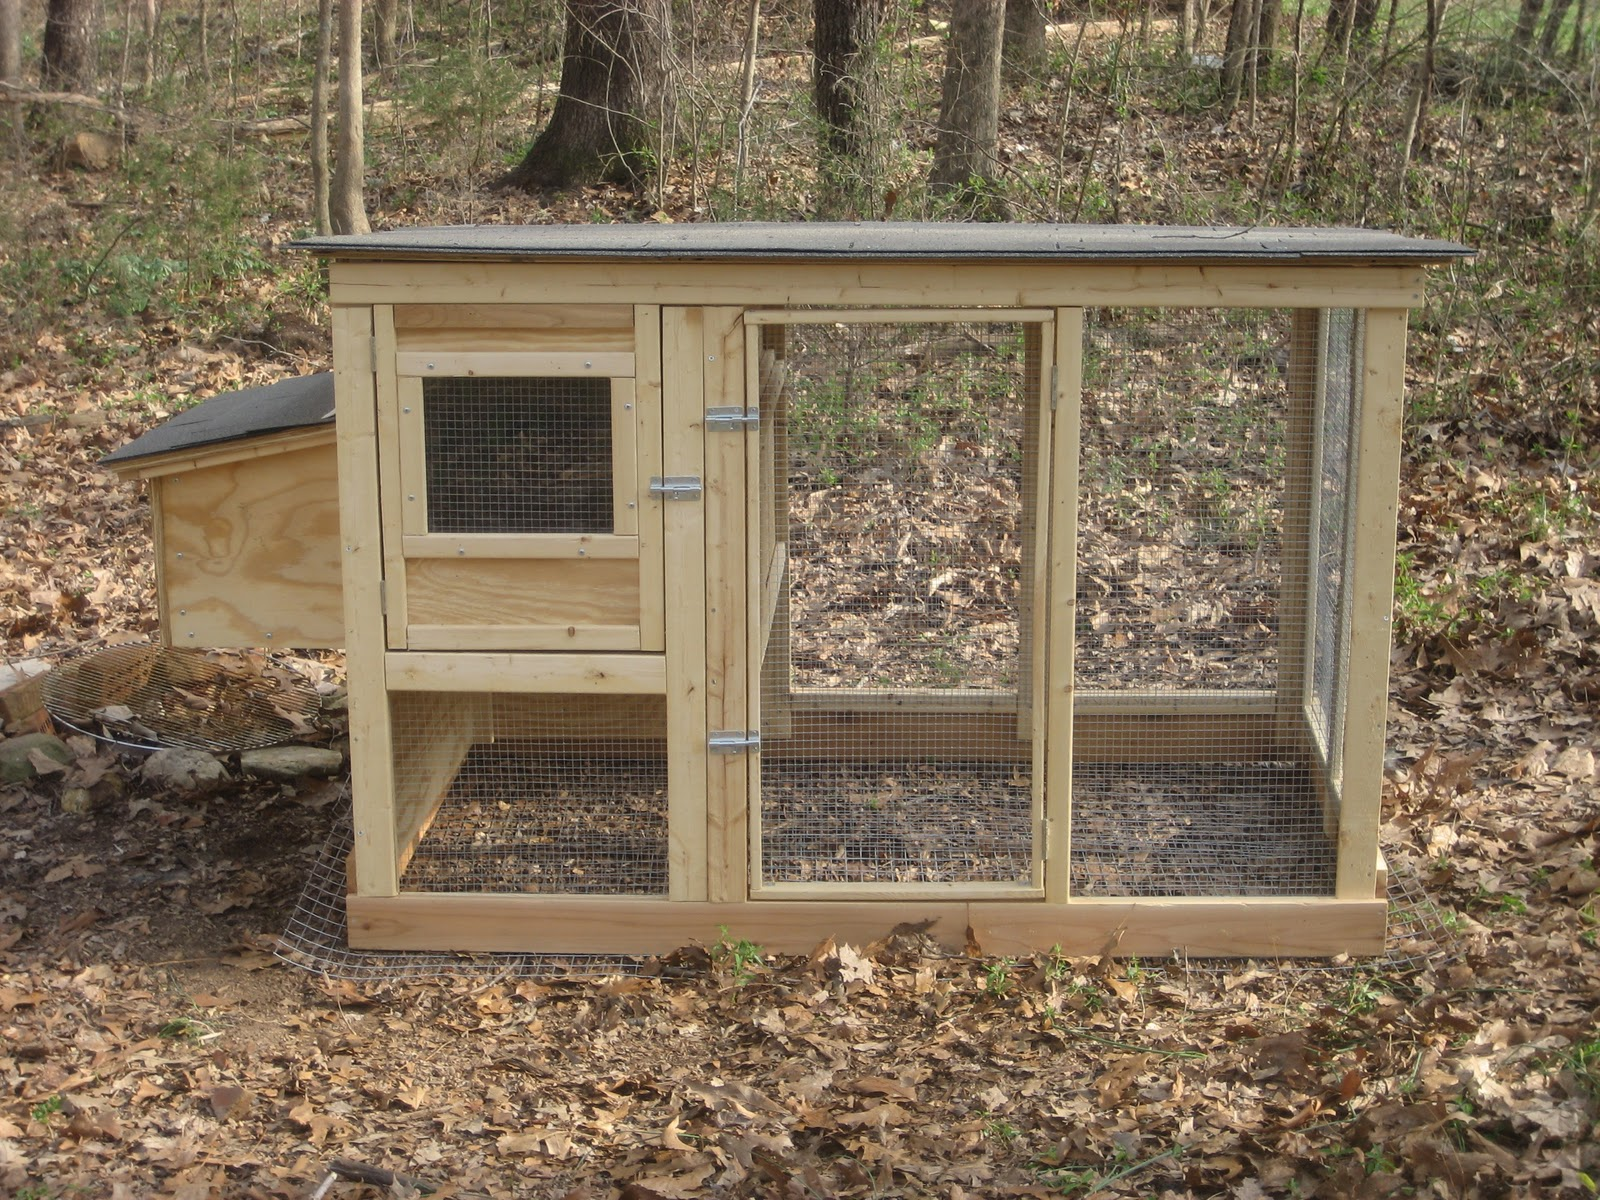 Backyard farming a look at a coop for Chicken coop size for 6 chickens